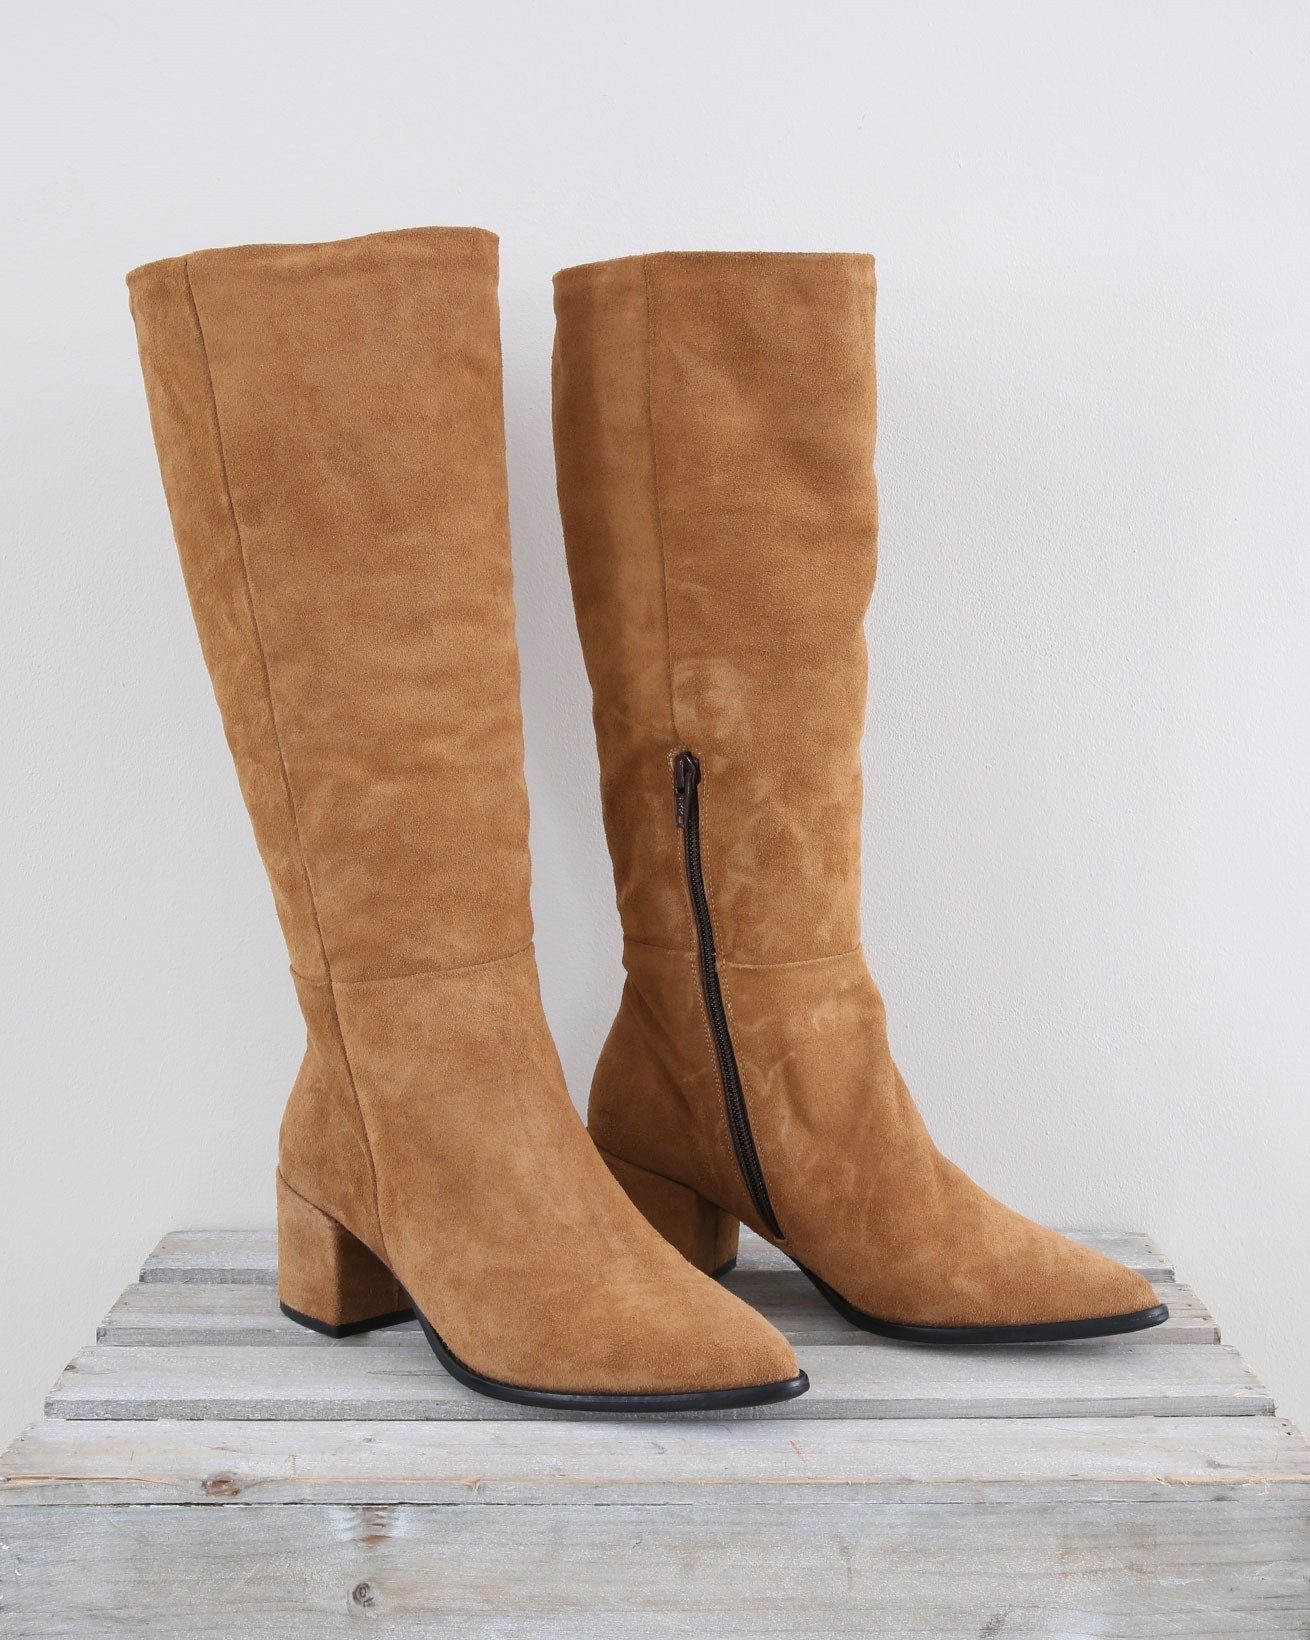 Suede Slouchy Boot - Size 37 - Camel - 1460